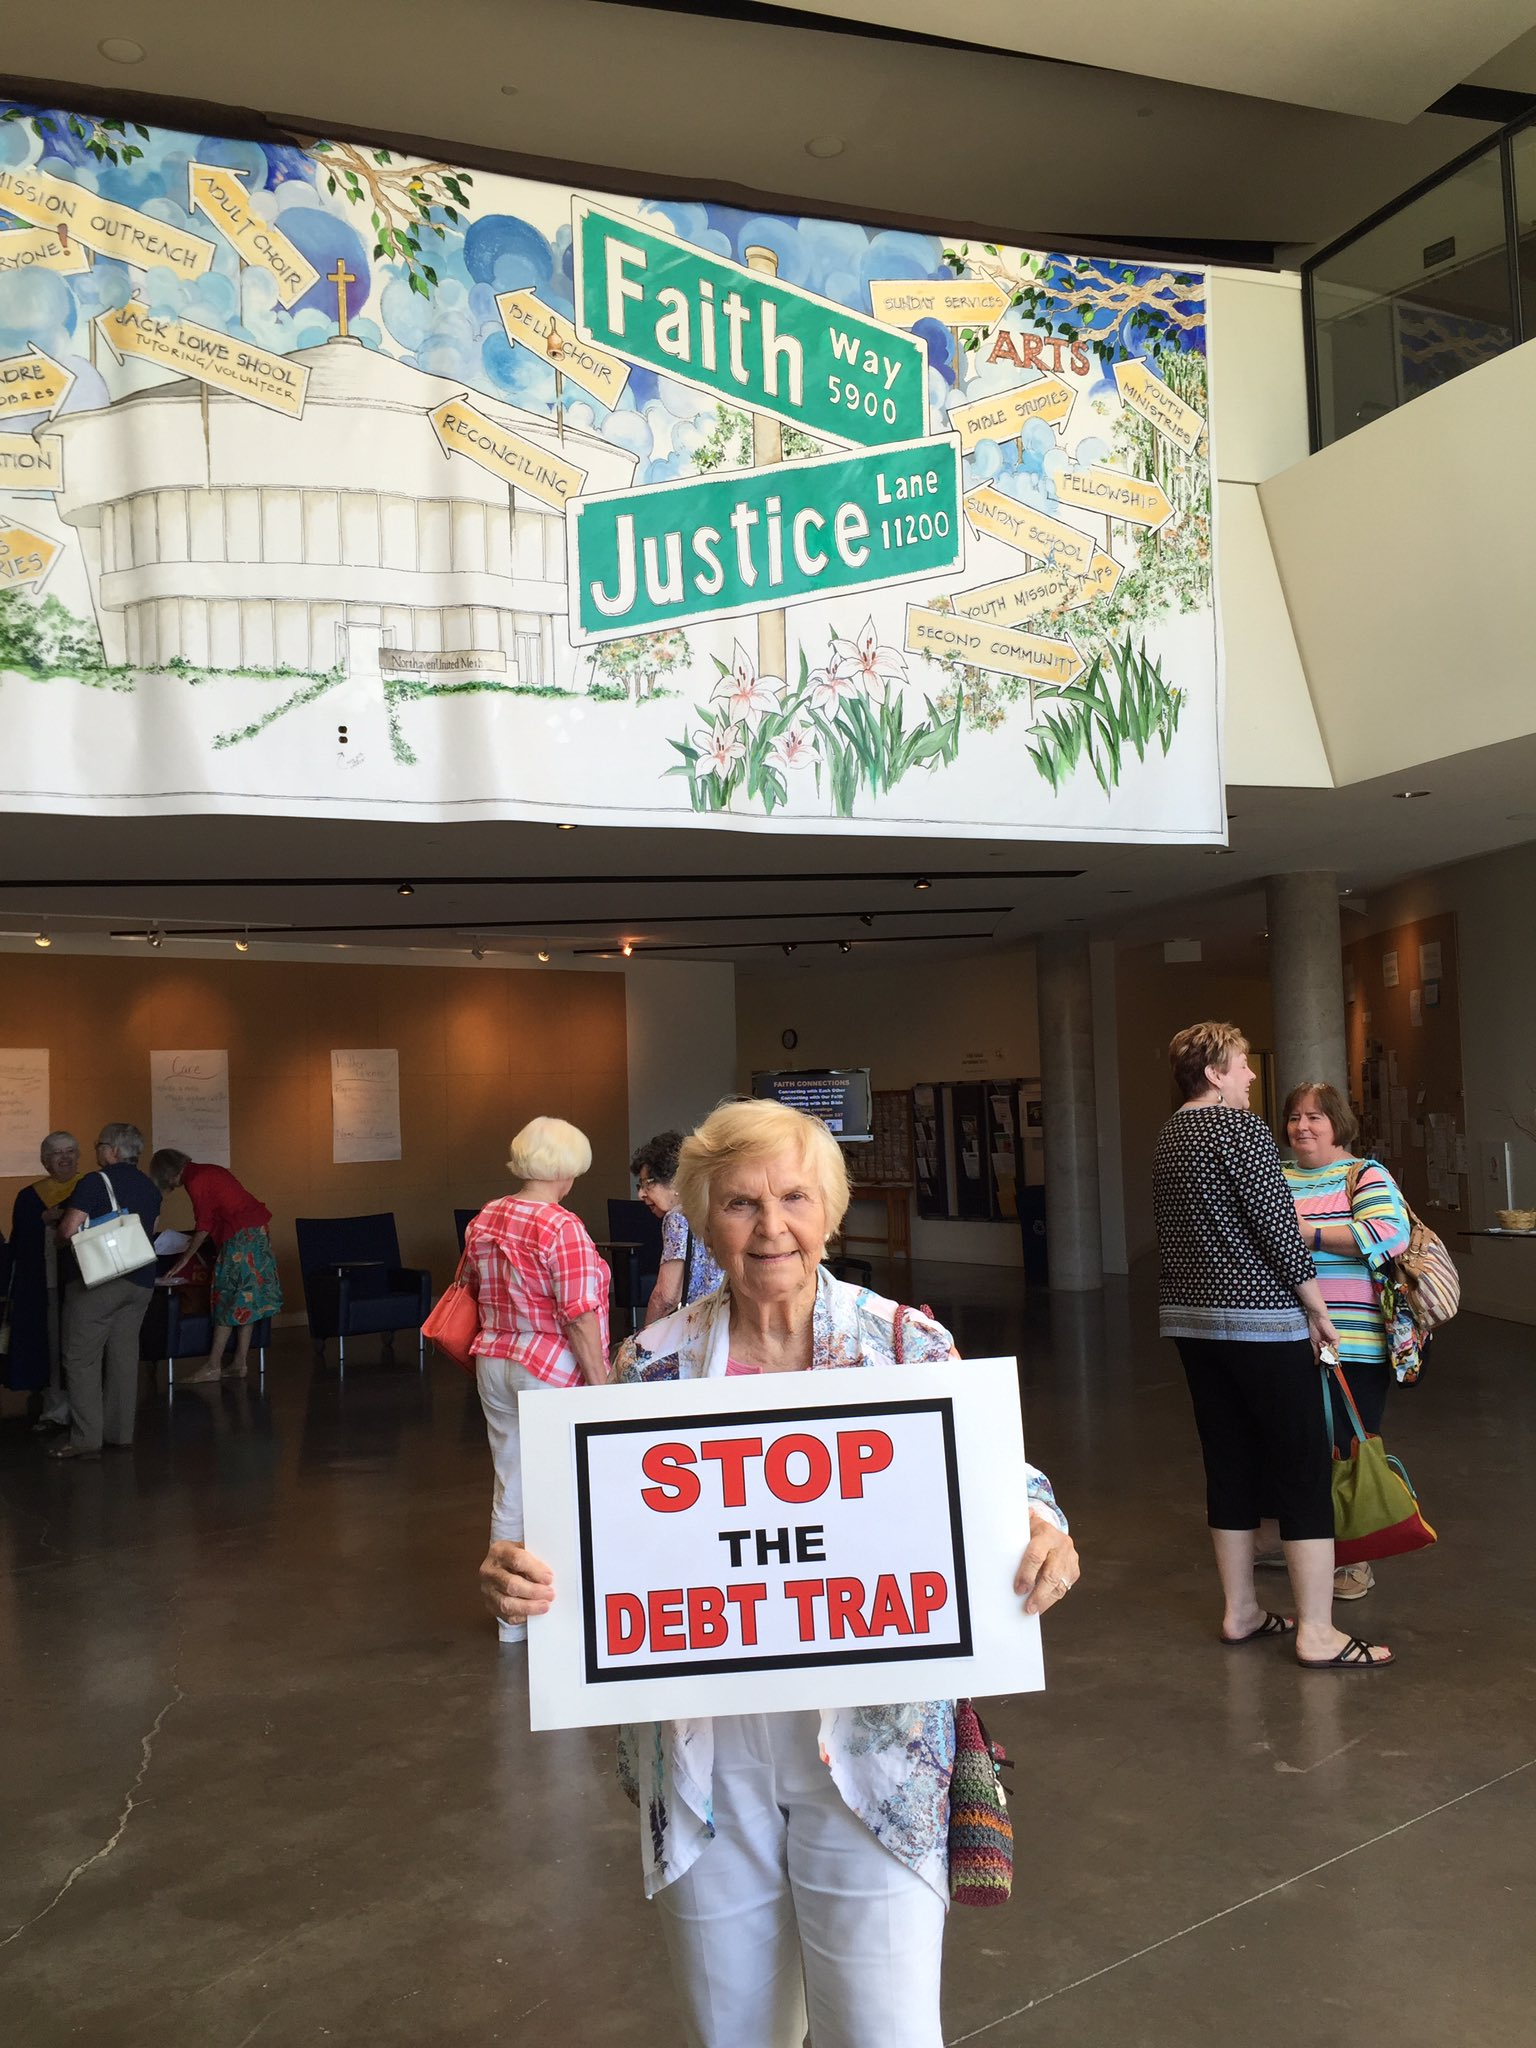 @CFPB #StopTheDebtTrap #StopTheDebtTrapSabbath #FaithInTexas https://t.co/N7yXndK0TH